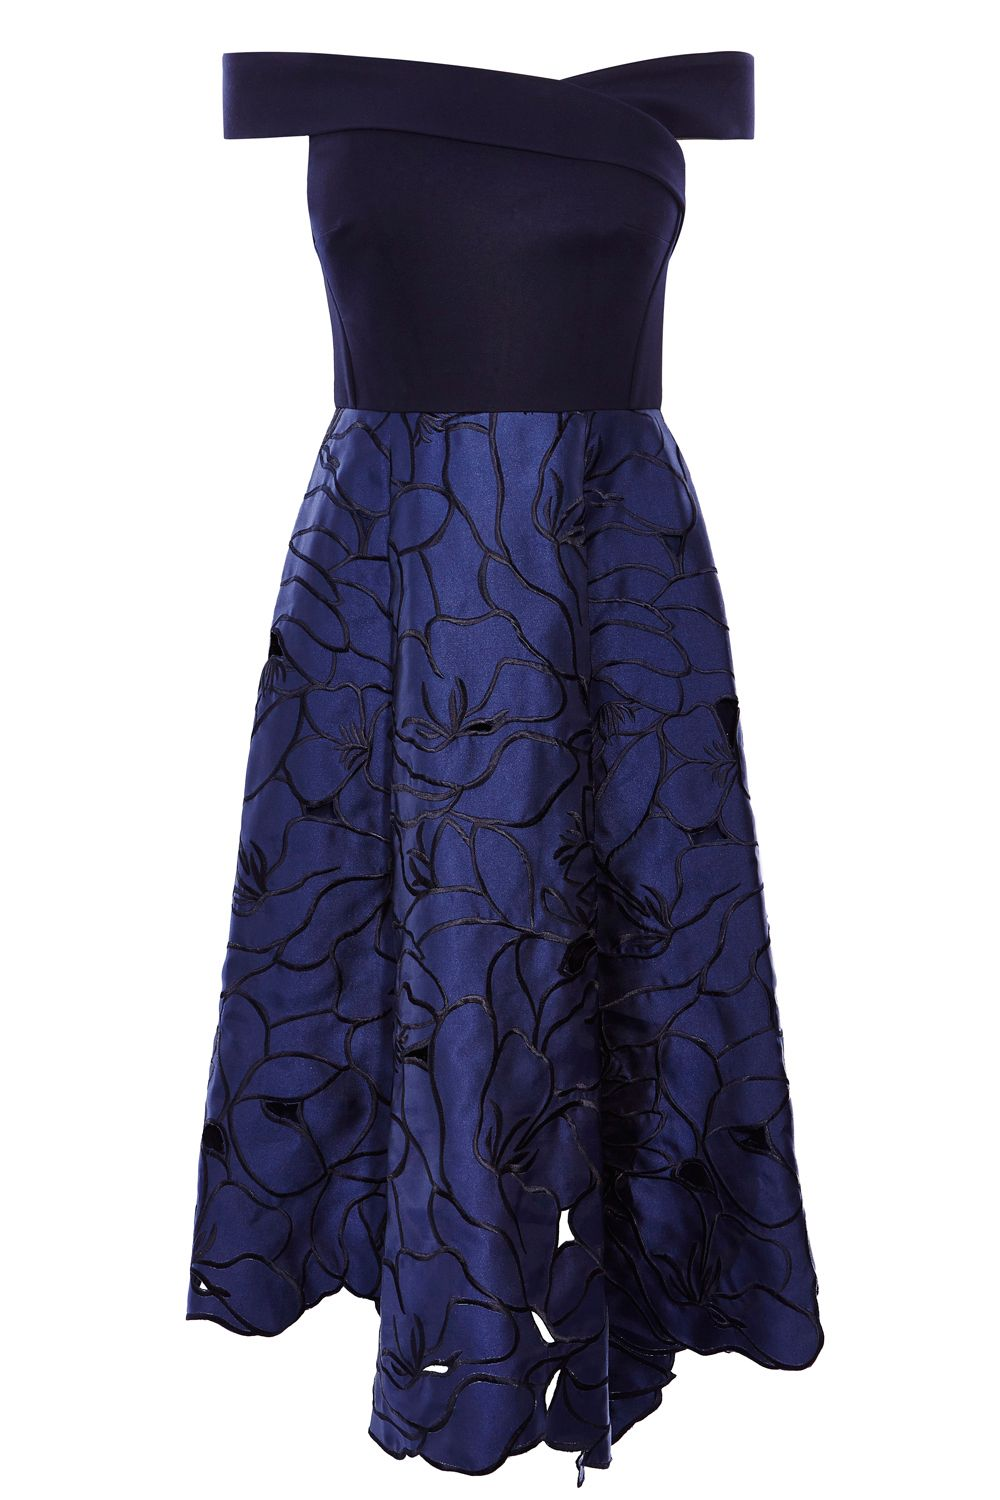 Coast Coast Velerie Artwork Midi Dress, Navy